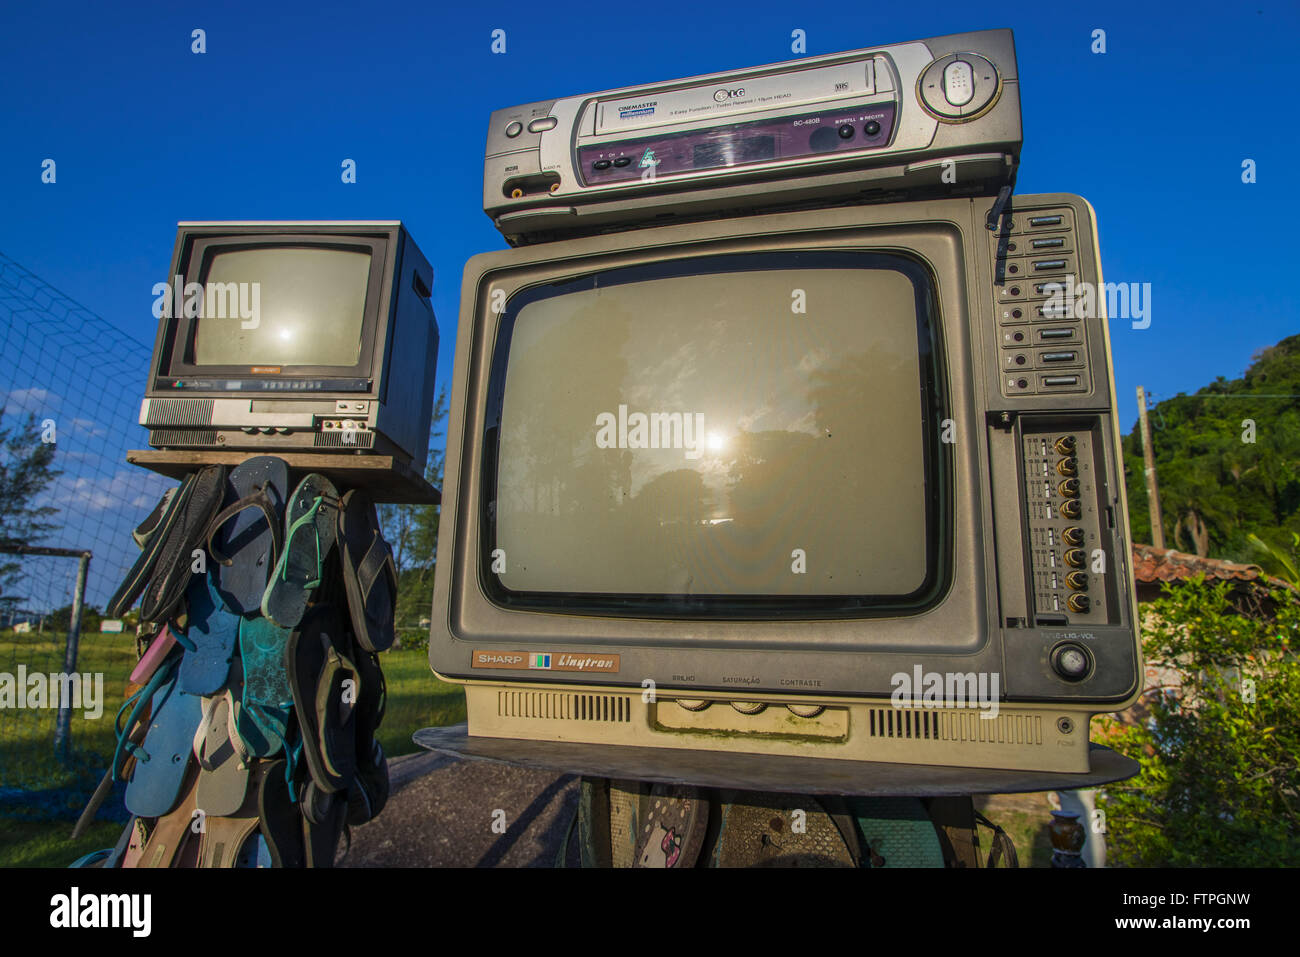 Detail of art installation with slippers and televisions in Inlet Beach - Stock Image